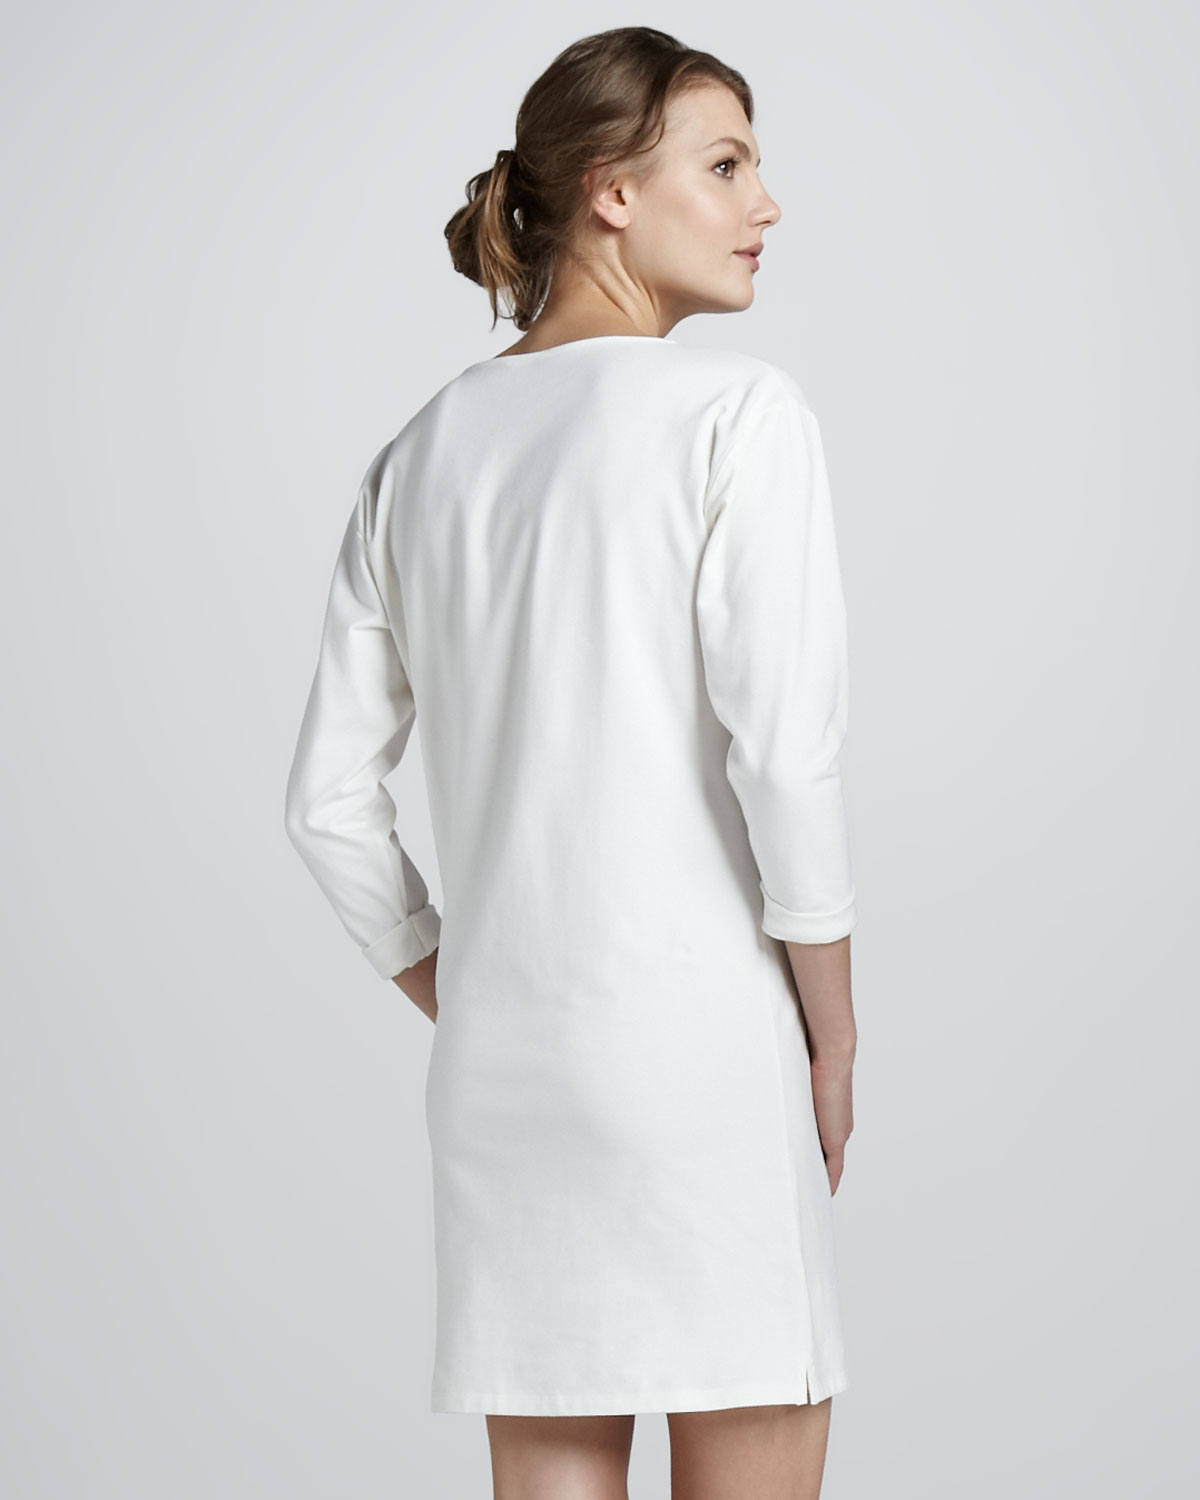 860a714f22 Theory Ode Crepe Shift Dress in White - Lyst